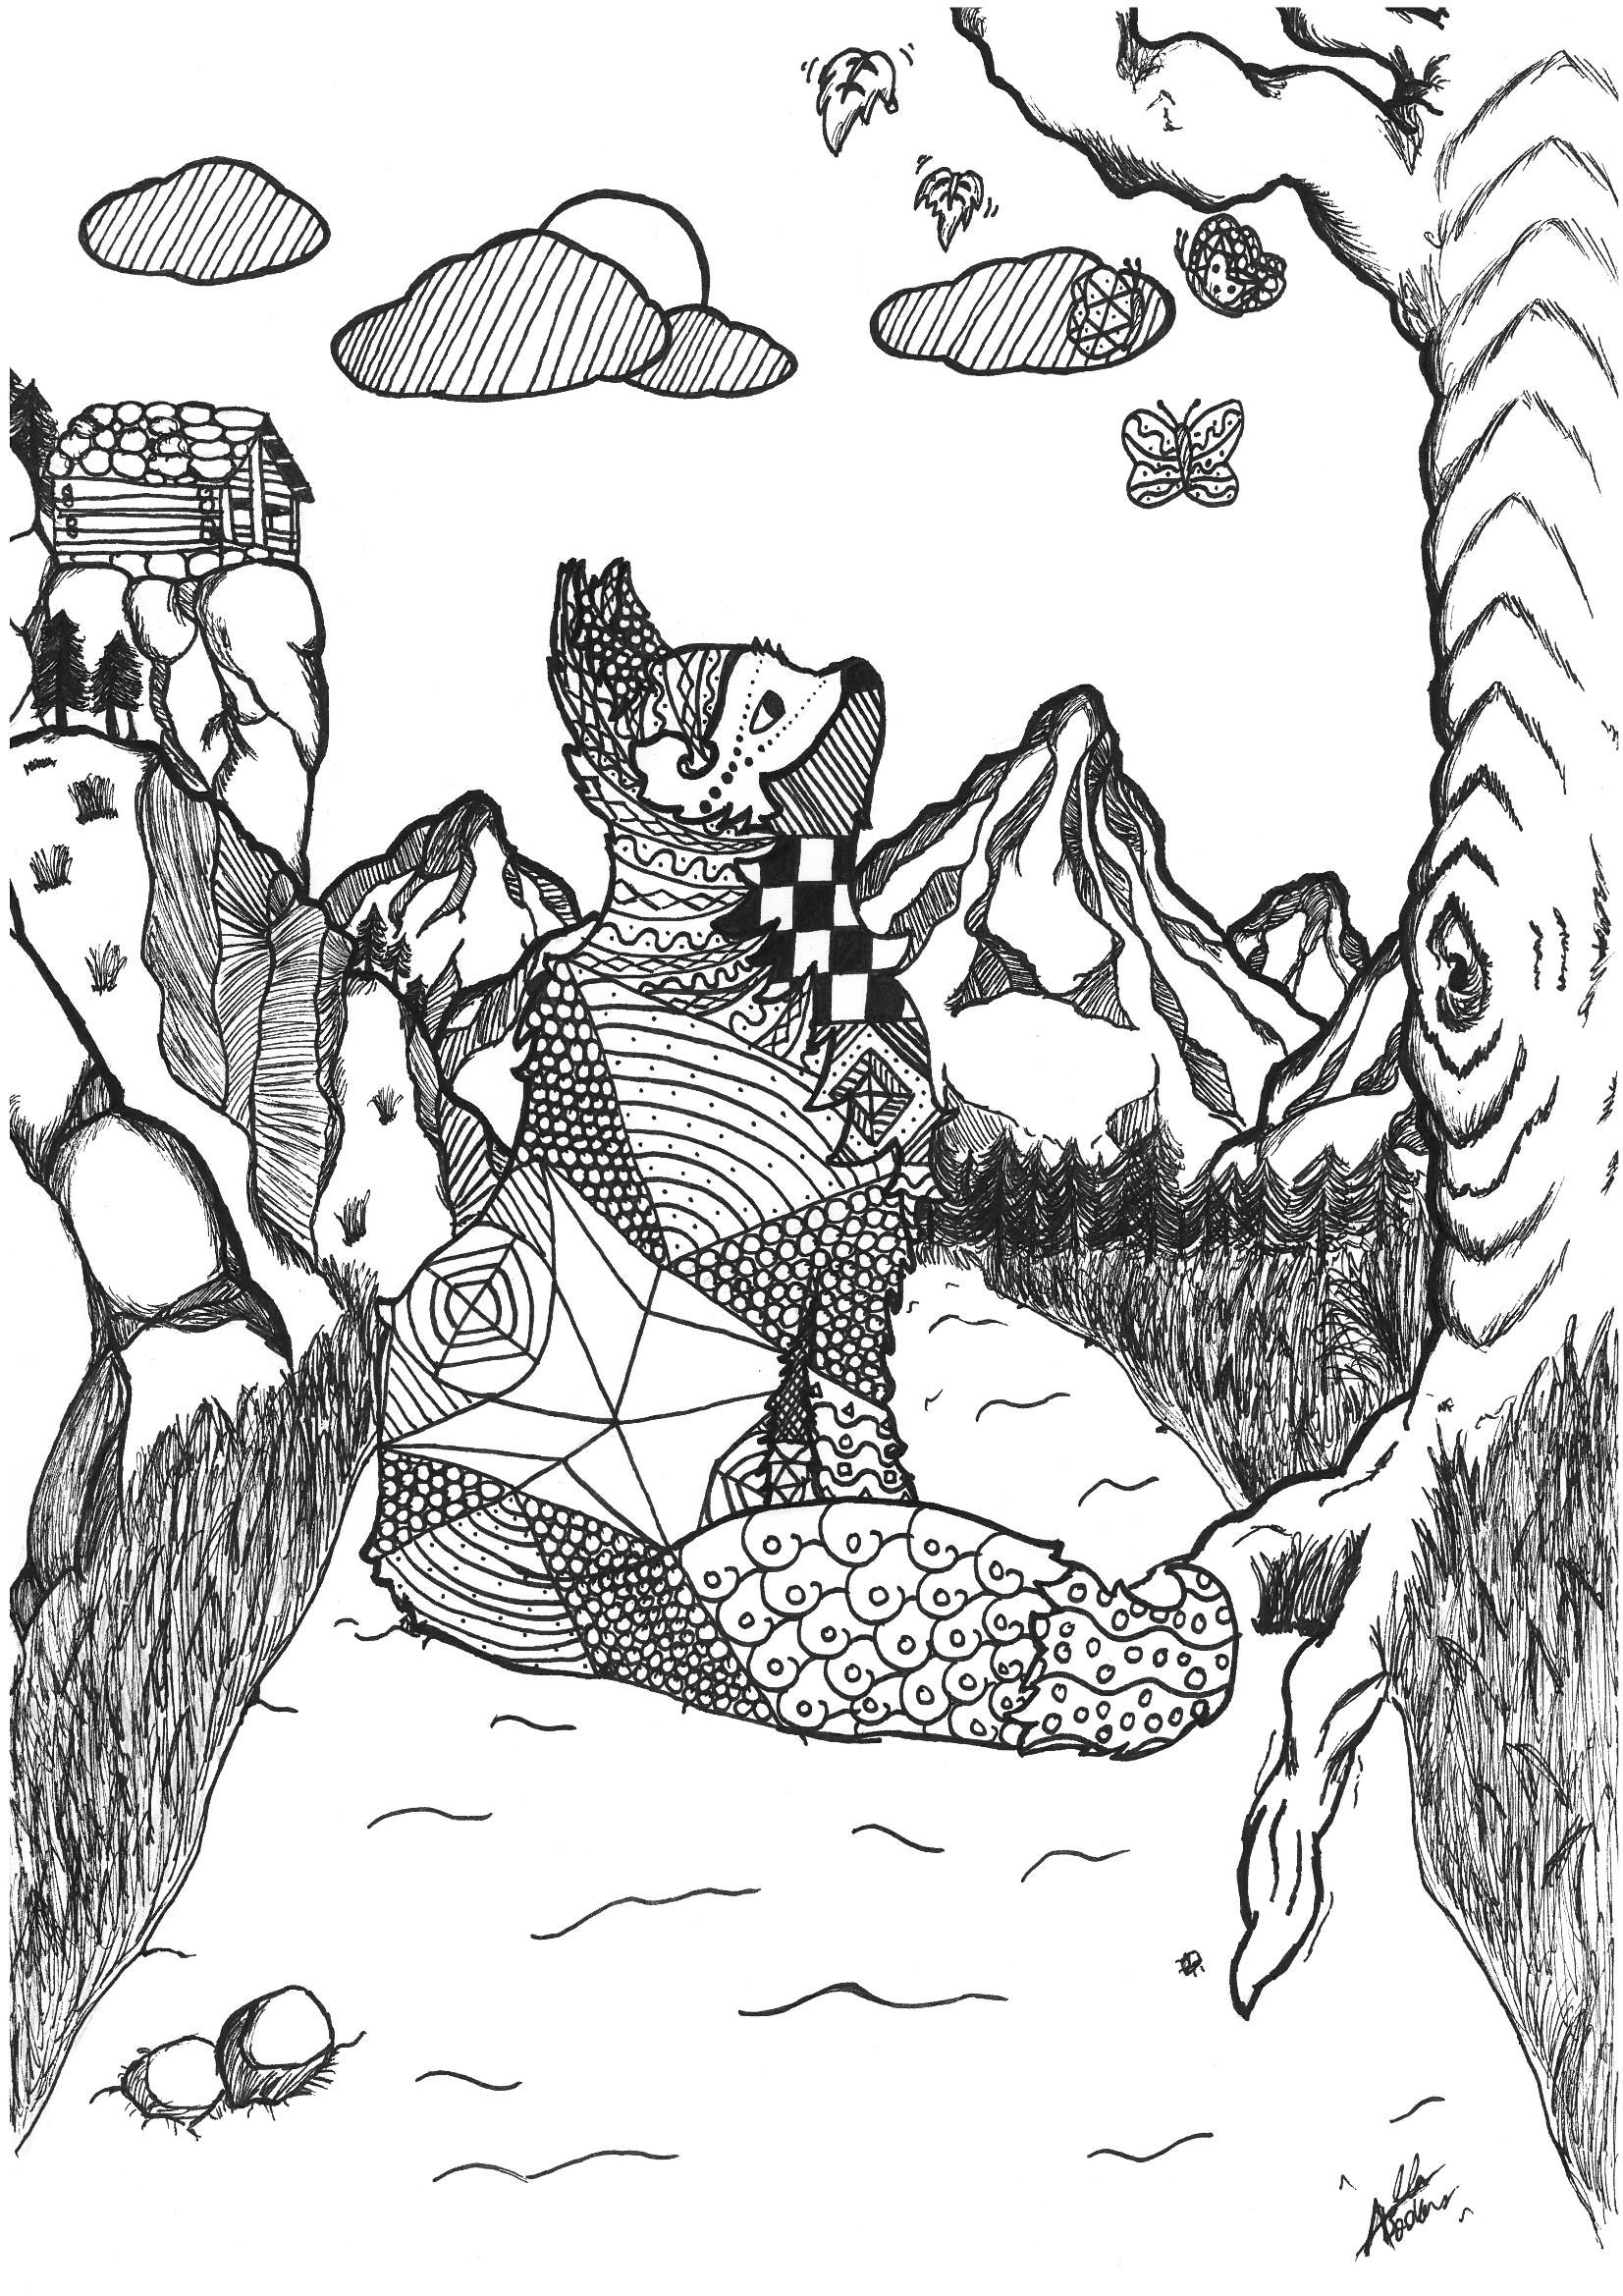 Coloring Pages Nature. Landscape, forest, mountains, sea, island | 2338x1653